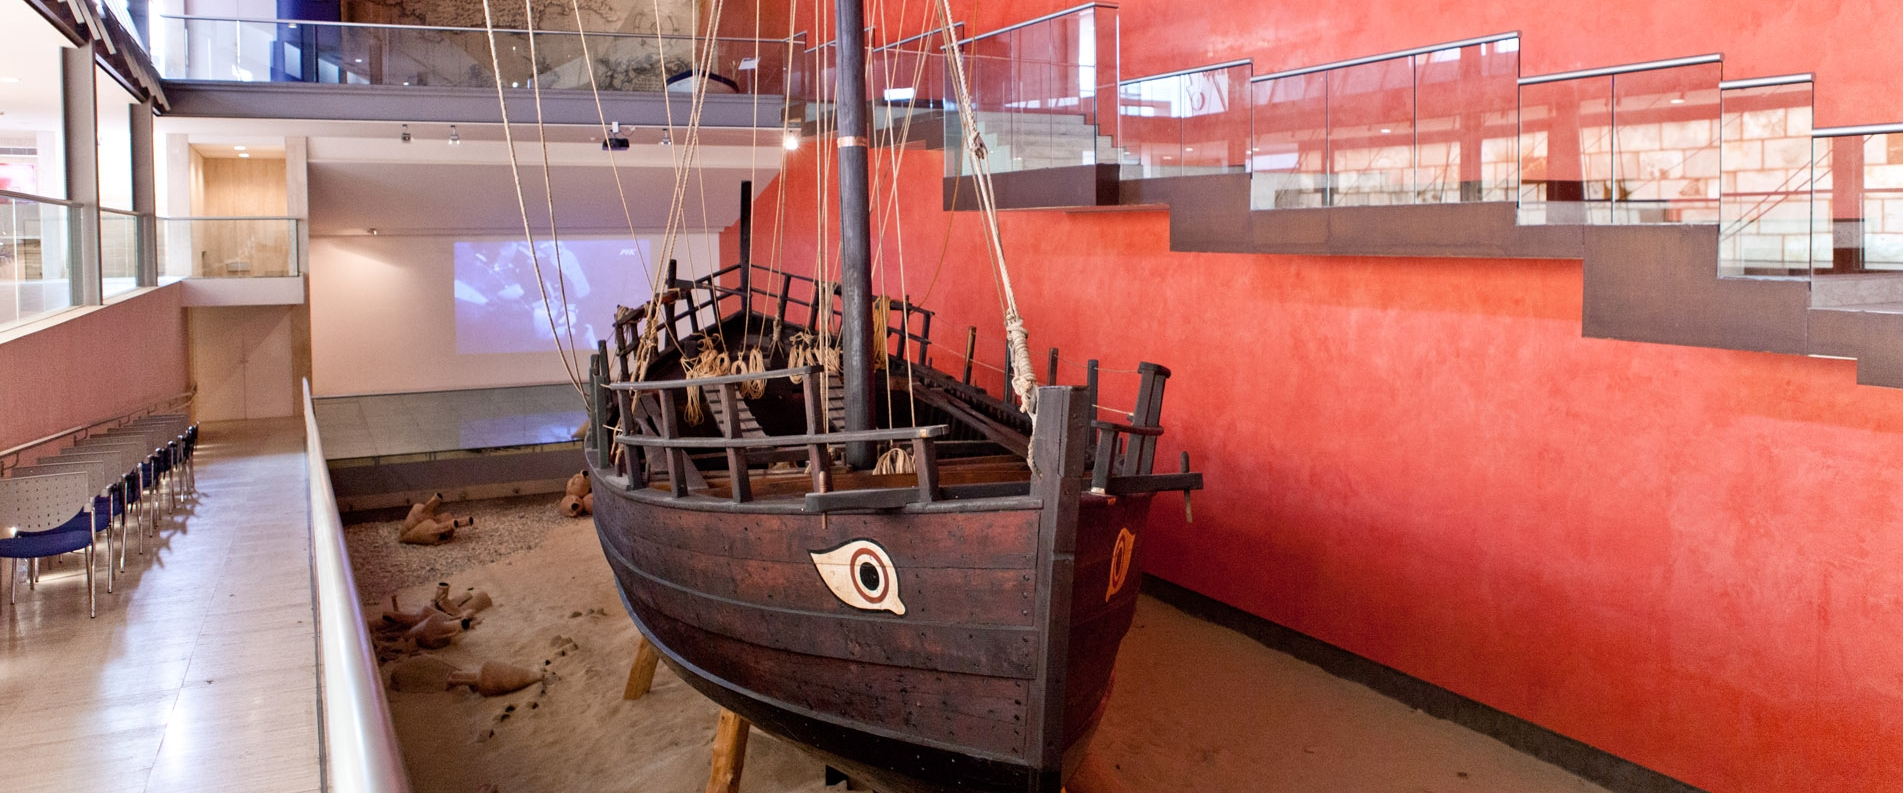 The Thalassa Municipal Museum: A tale of the Sea